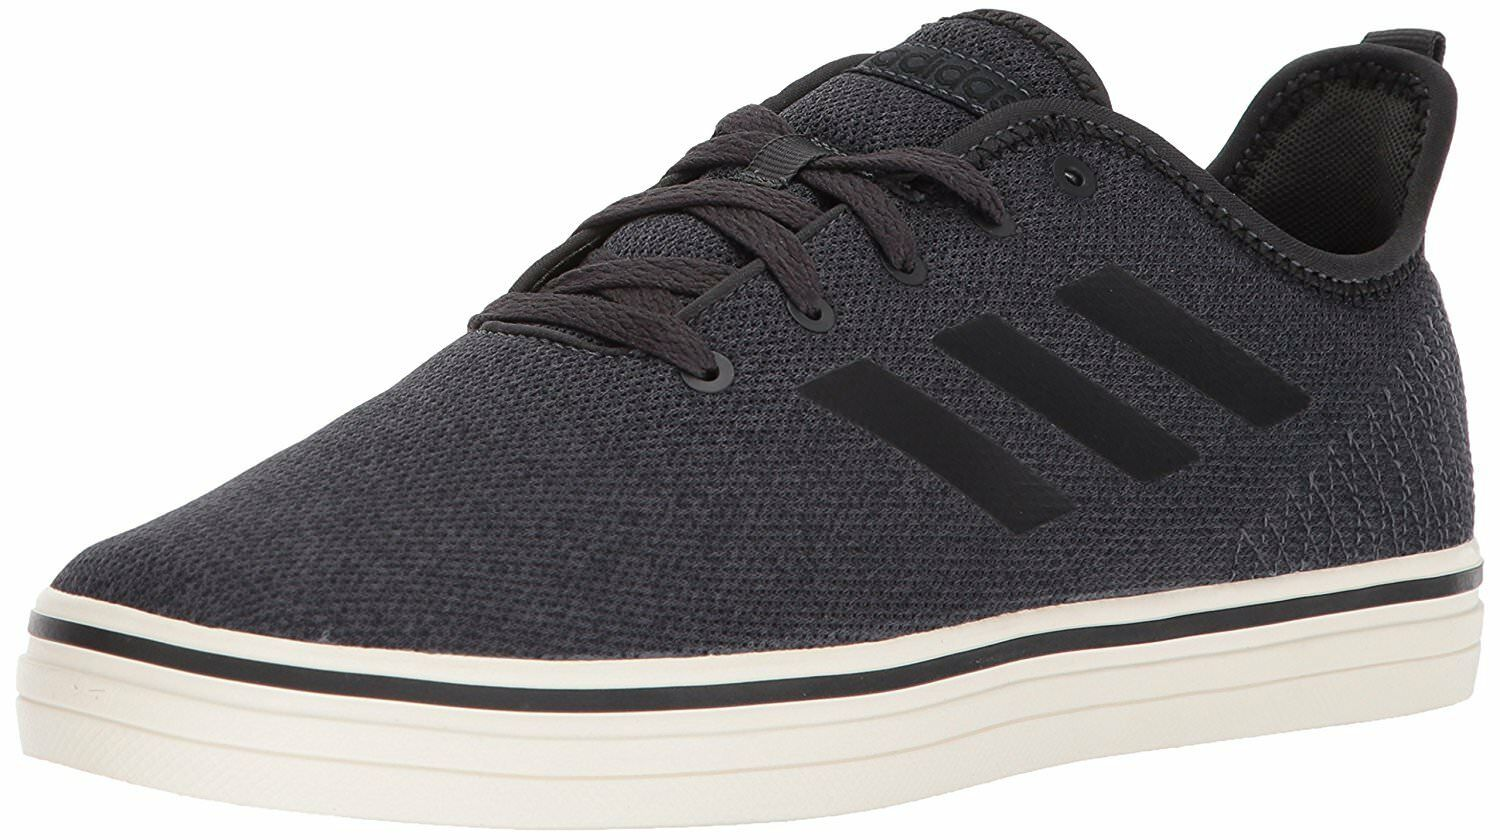 adidas hommes défier chaussures, 3 3 chaussures, couleurs 07f83e